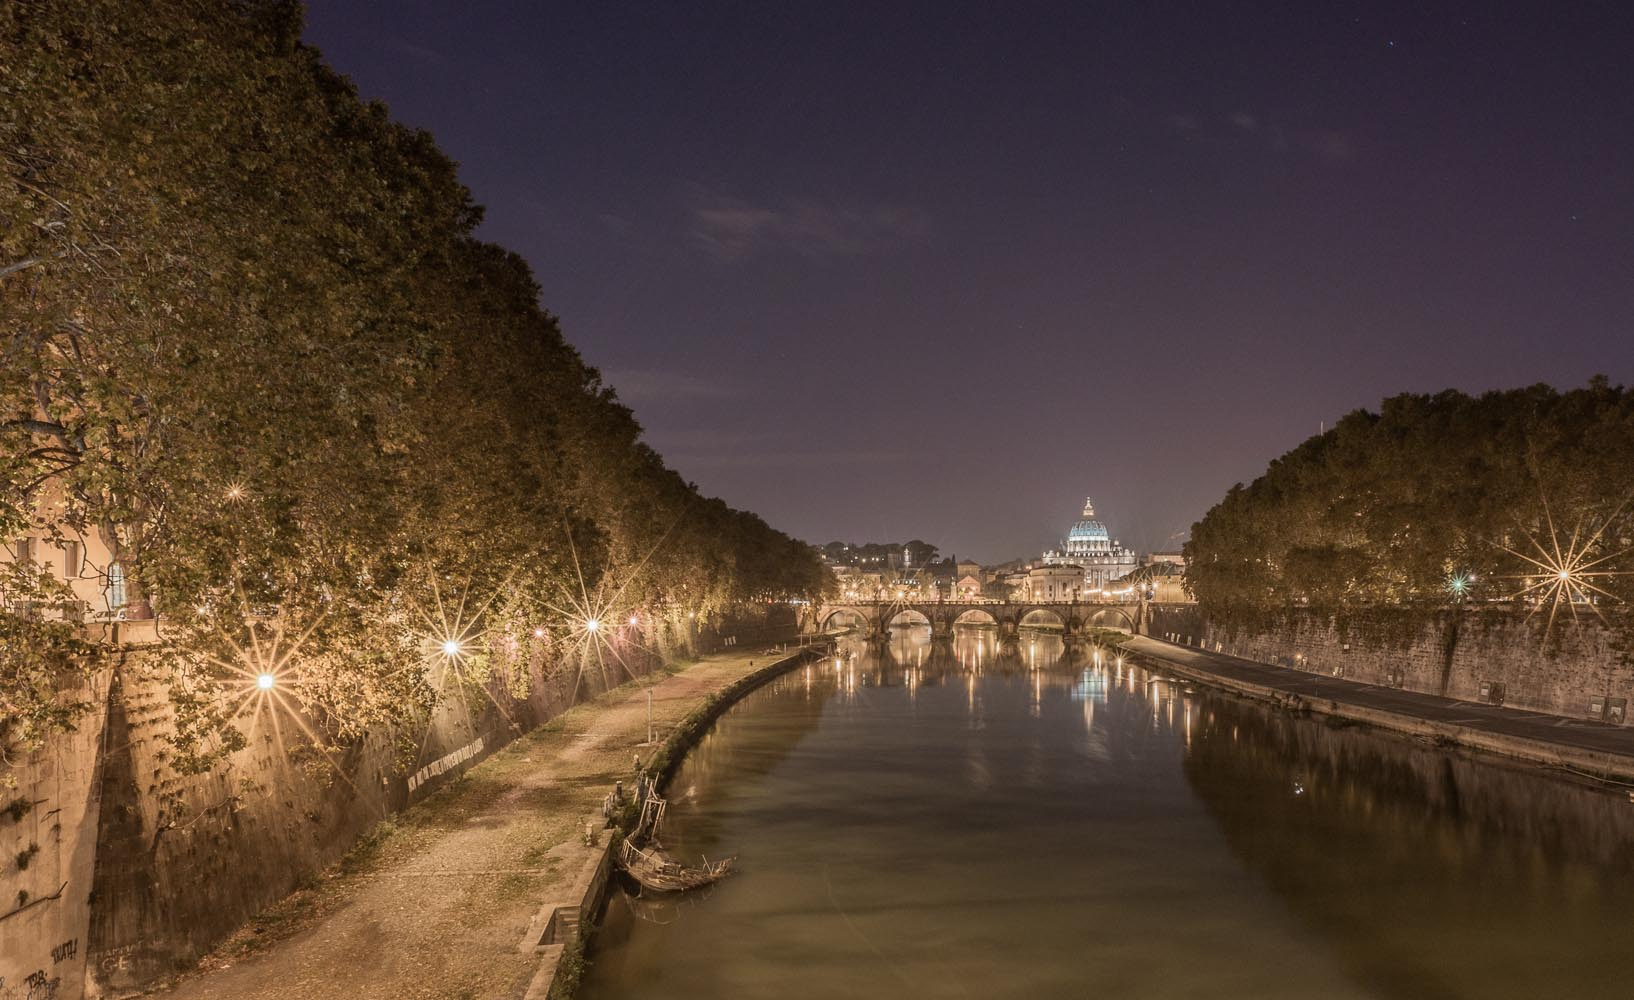 The Tiber River, Rome, Italy